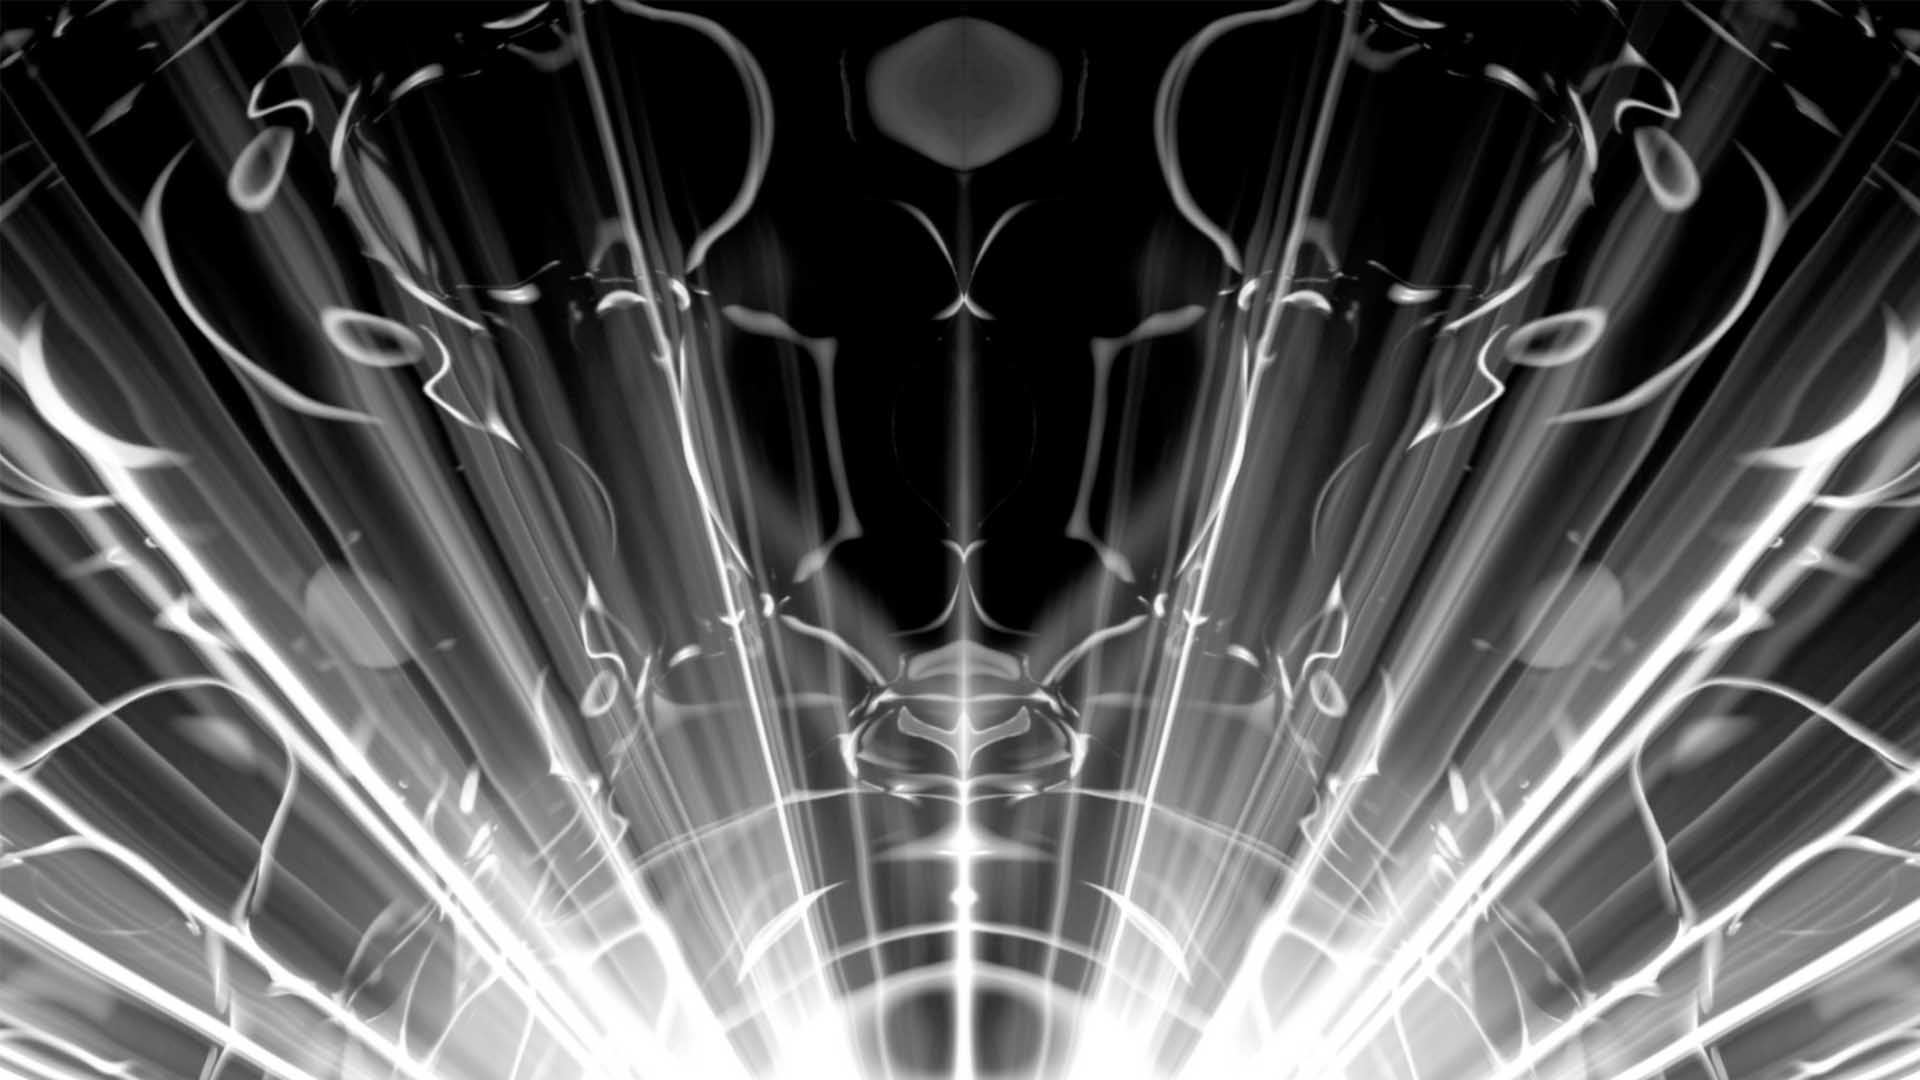 Black_Rays_Abstract_HD_Video_Motion_Background_Wallpaper